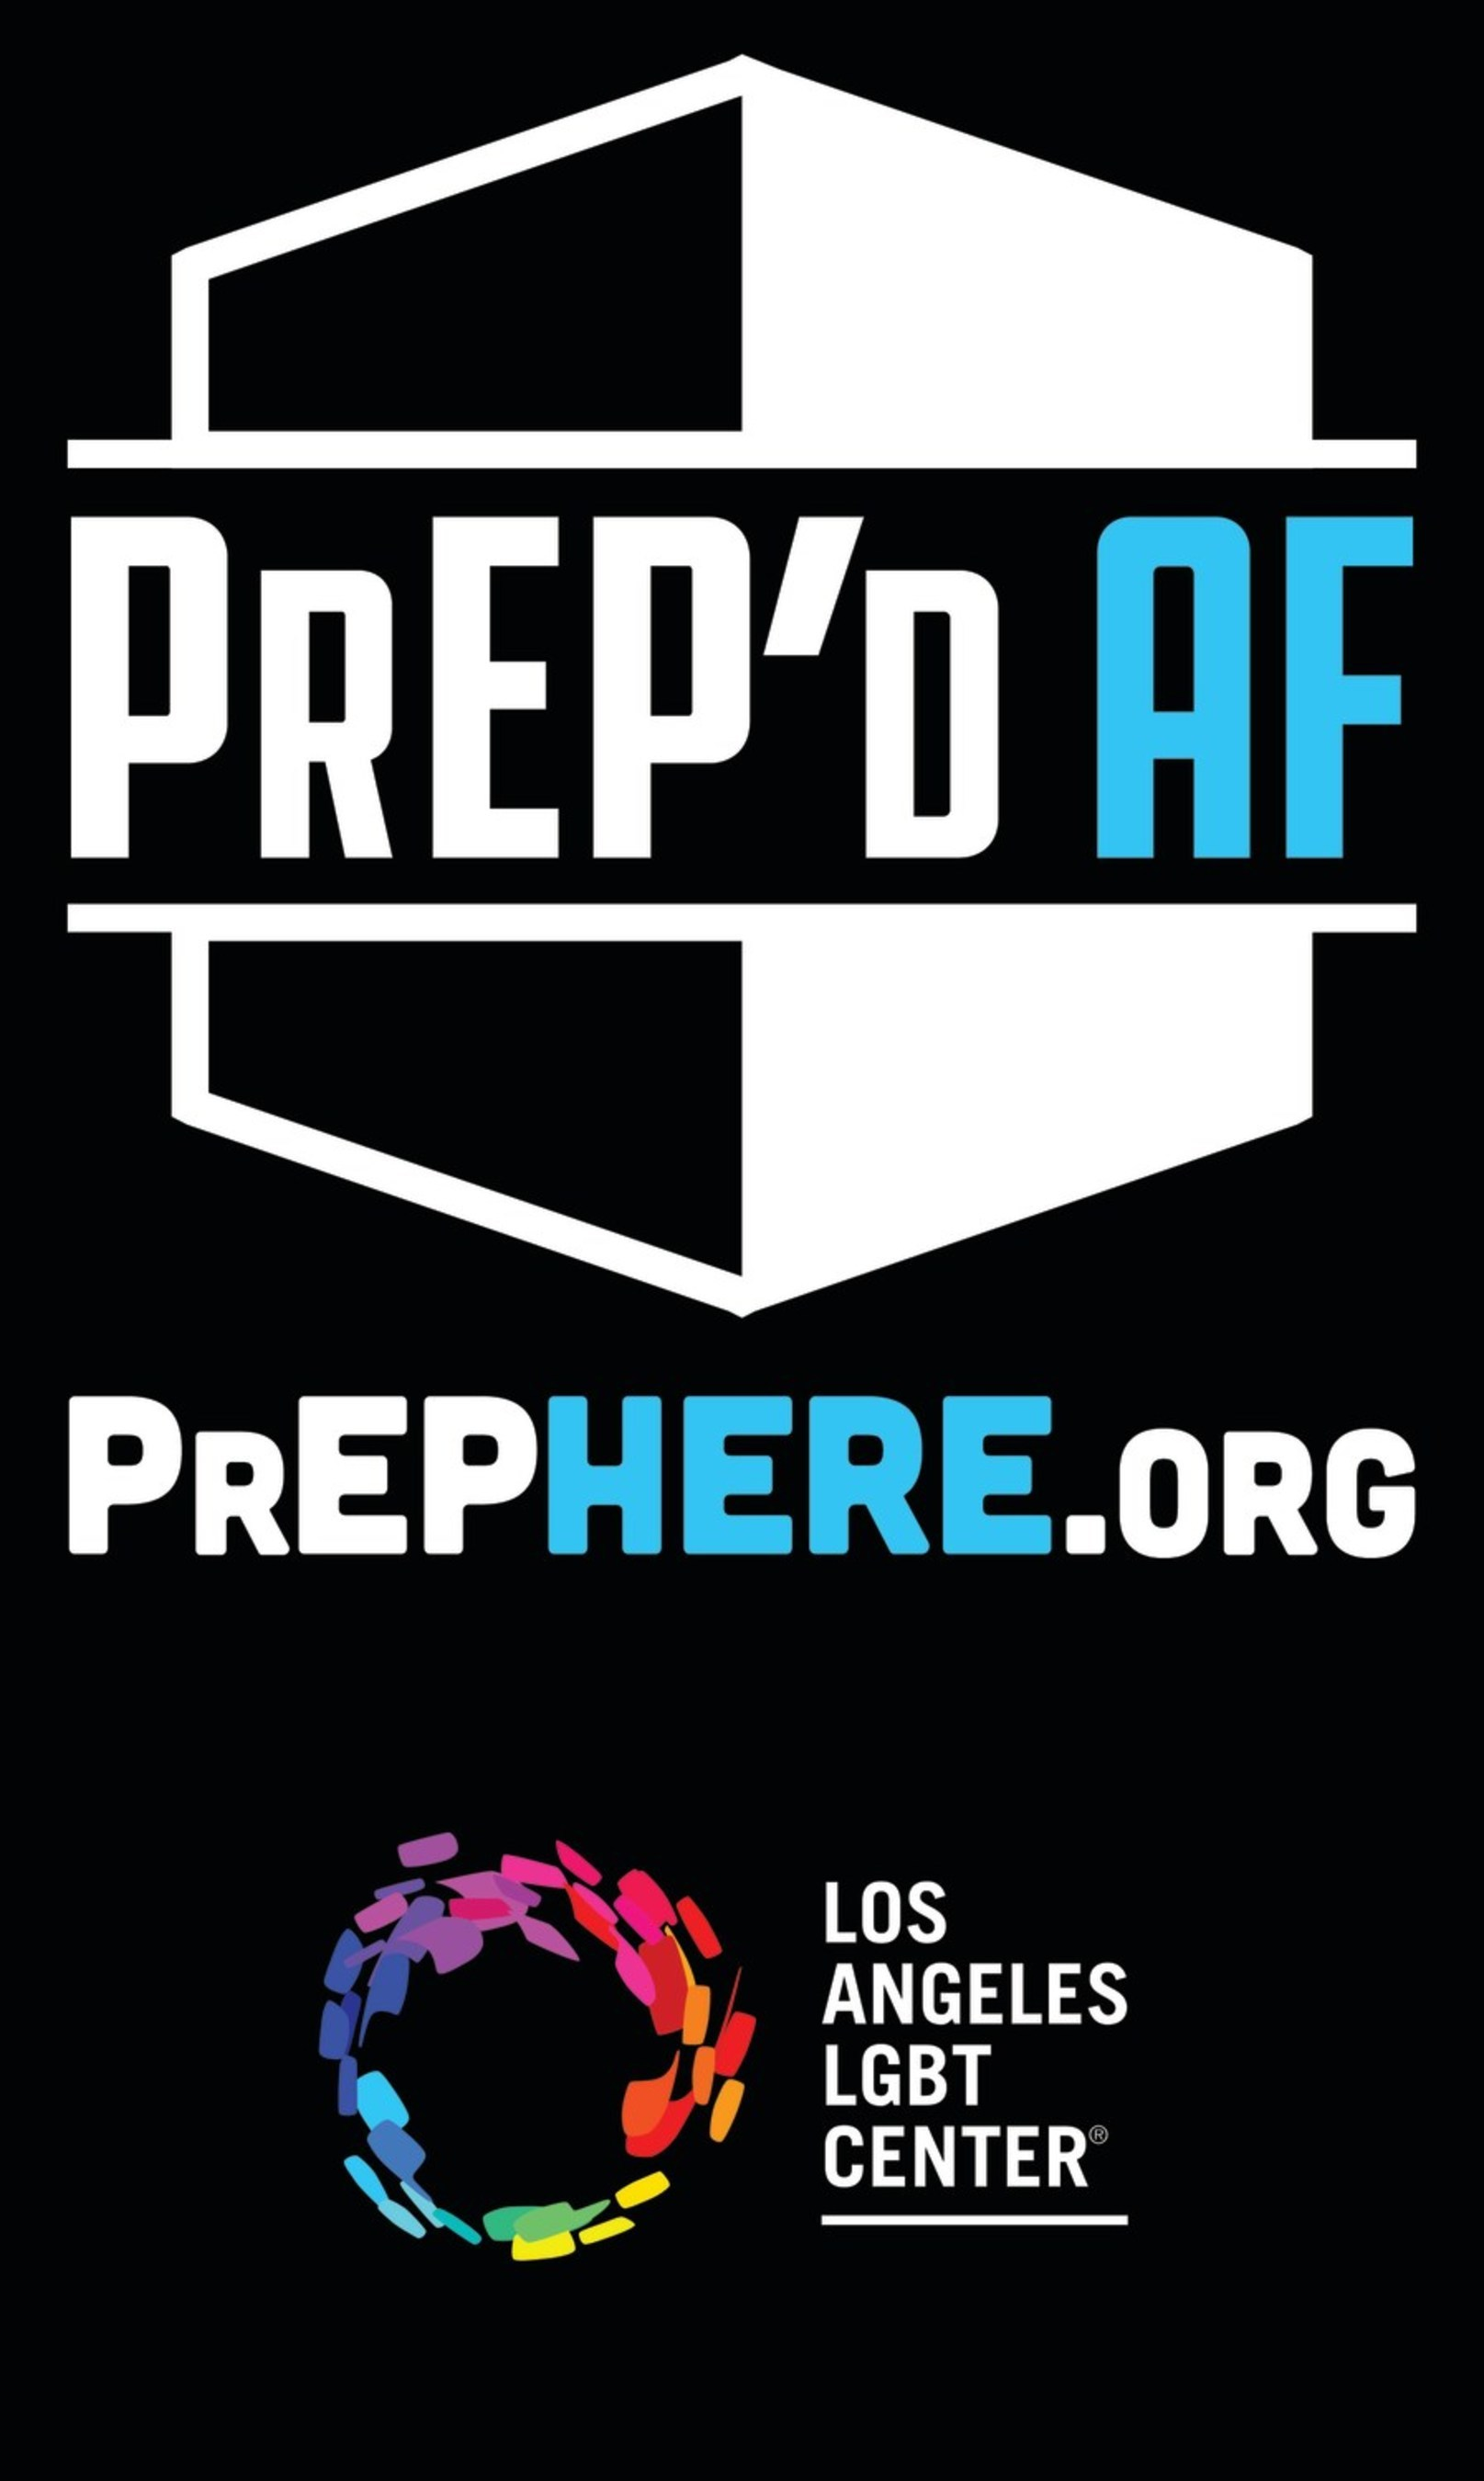 Inspired by Milan's personal experience with pre-exposure prophylaxis (PrEP), the PrEP'd AF campaign encourages the community to be as prepared as possible to protect themselves against HIV and continues to raise awareness for PrEP, a safe and effective once-daily medicine that has been proven to reduce the risk of HIV infection by up to 99 percent, if used as prescribed.